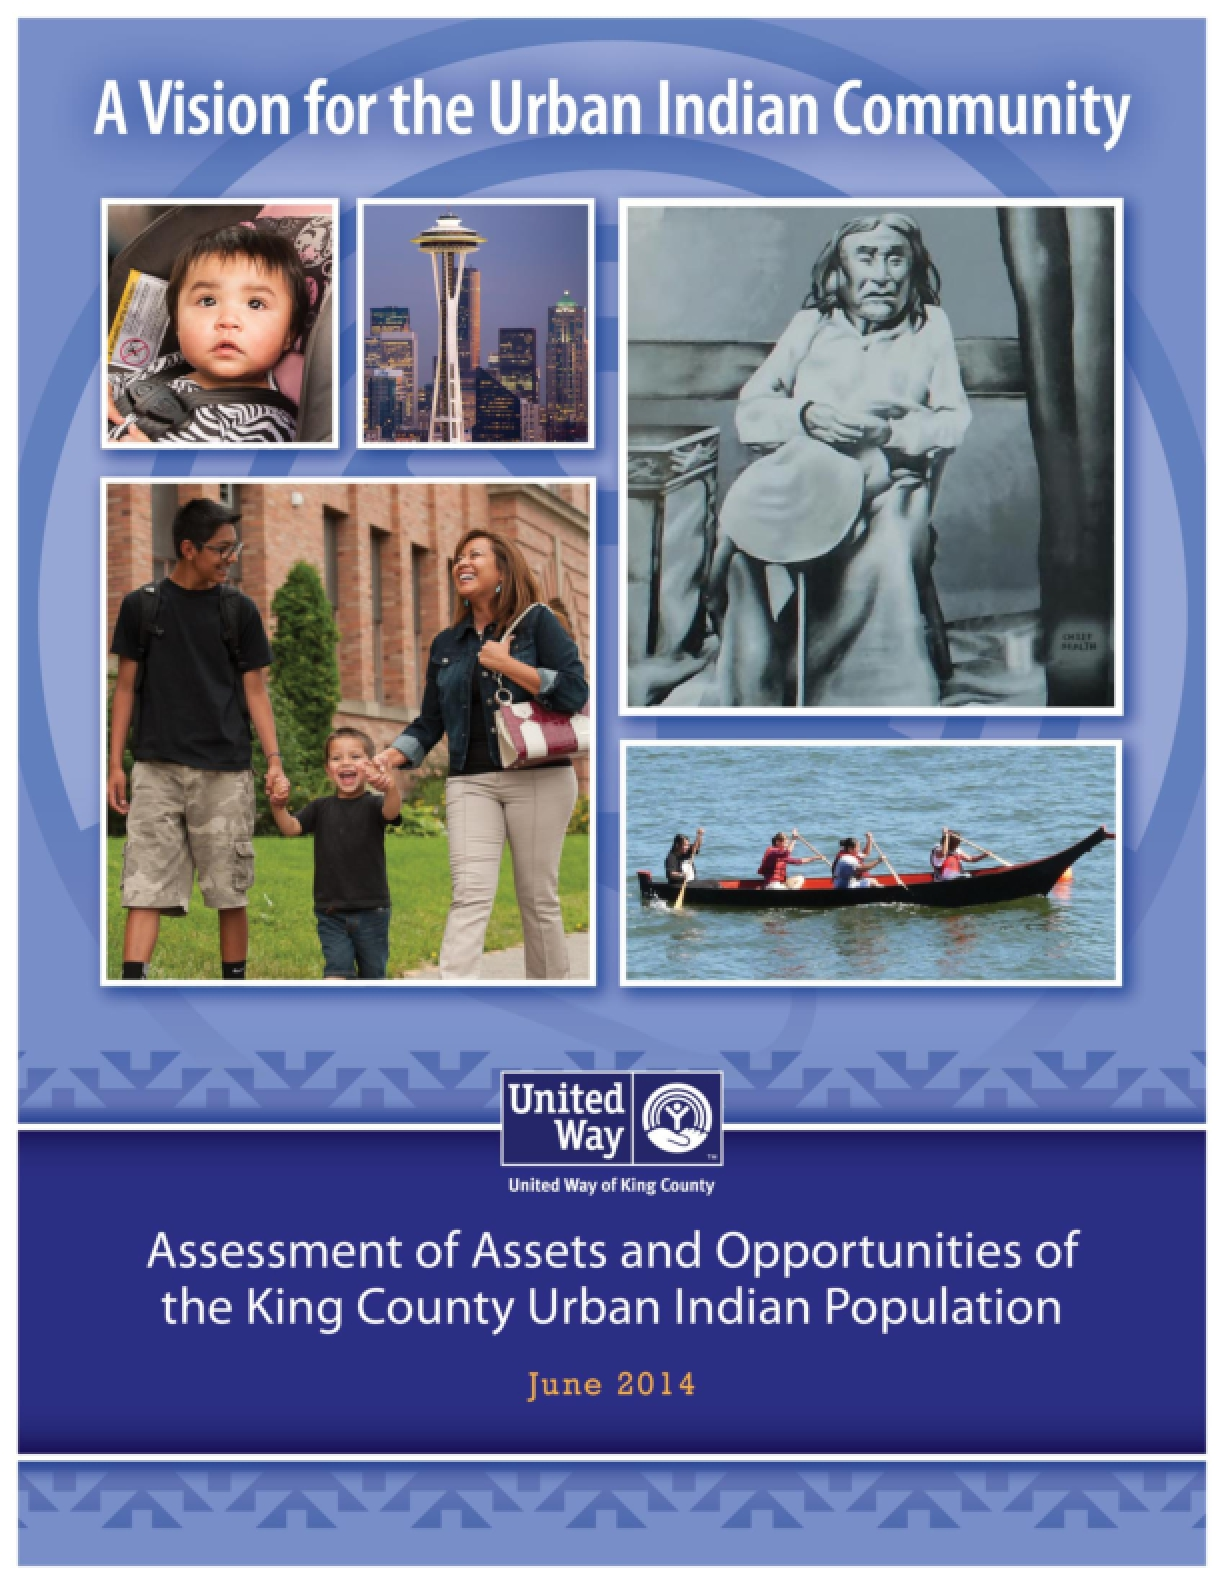 A Vision for the Urban Indian Community - Assessment of Assets and Opportunities of the King County Urban Indian Population